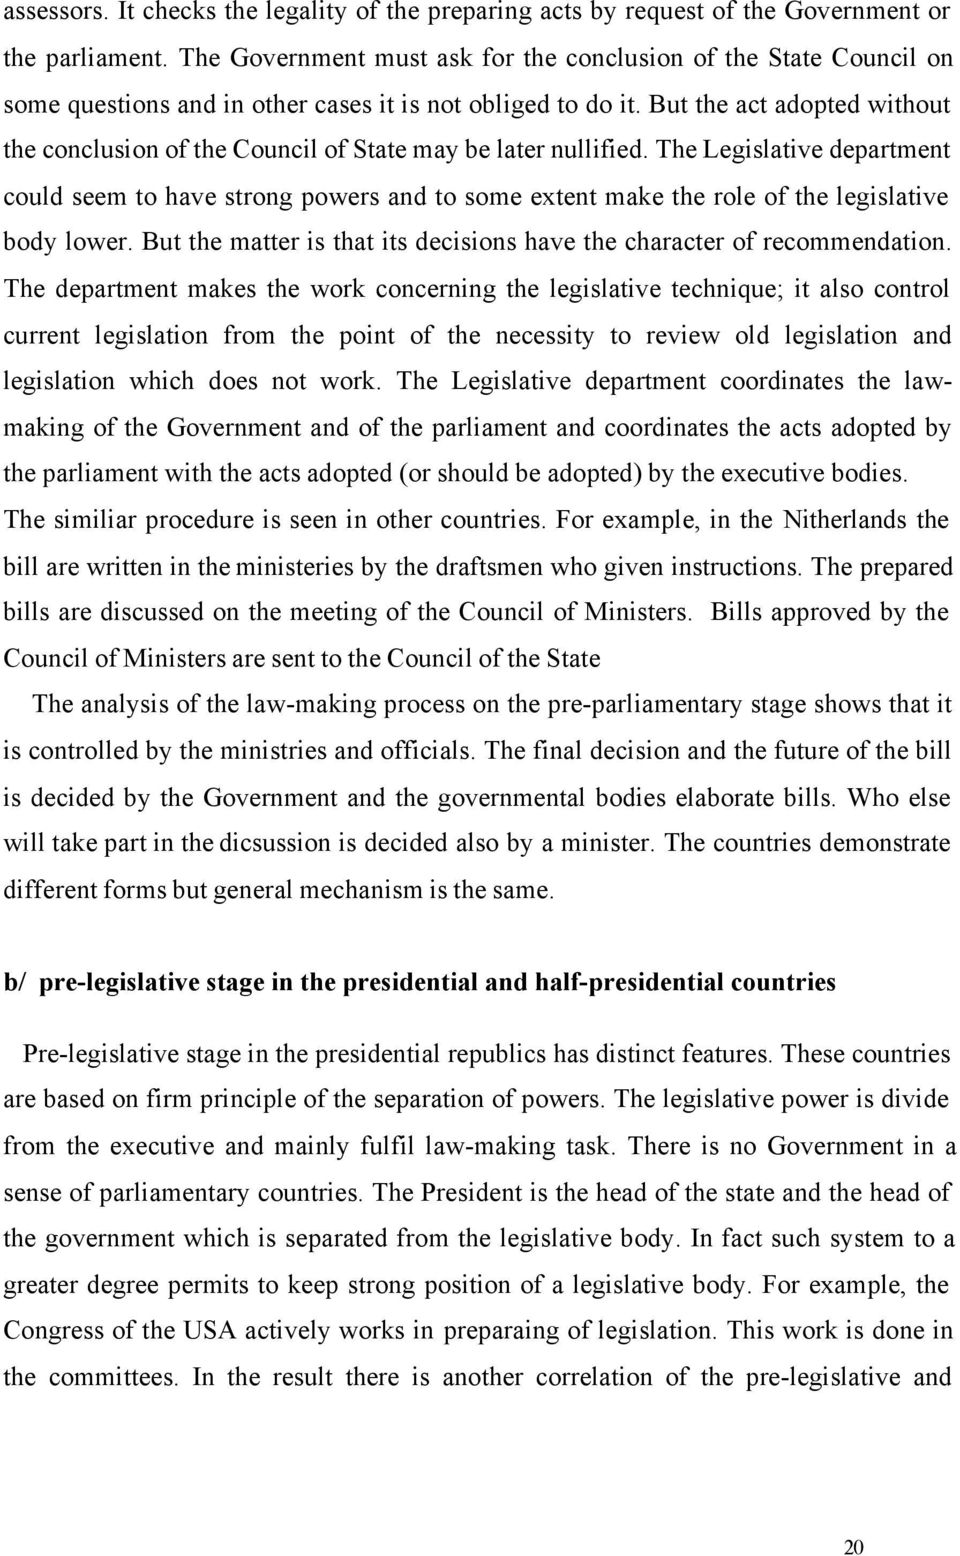 But the act adopted without the conclusion of the Council of State may be later nullified.